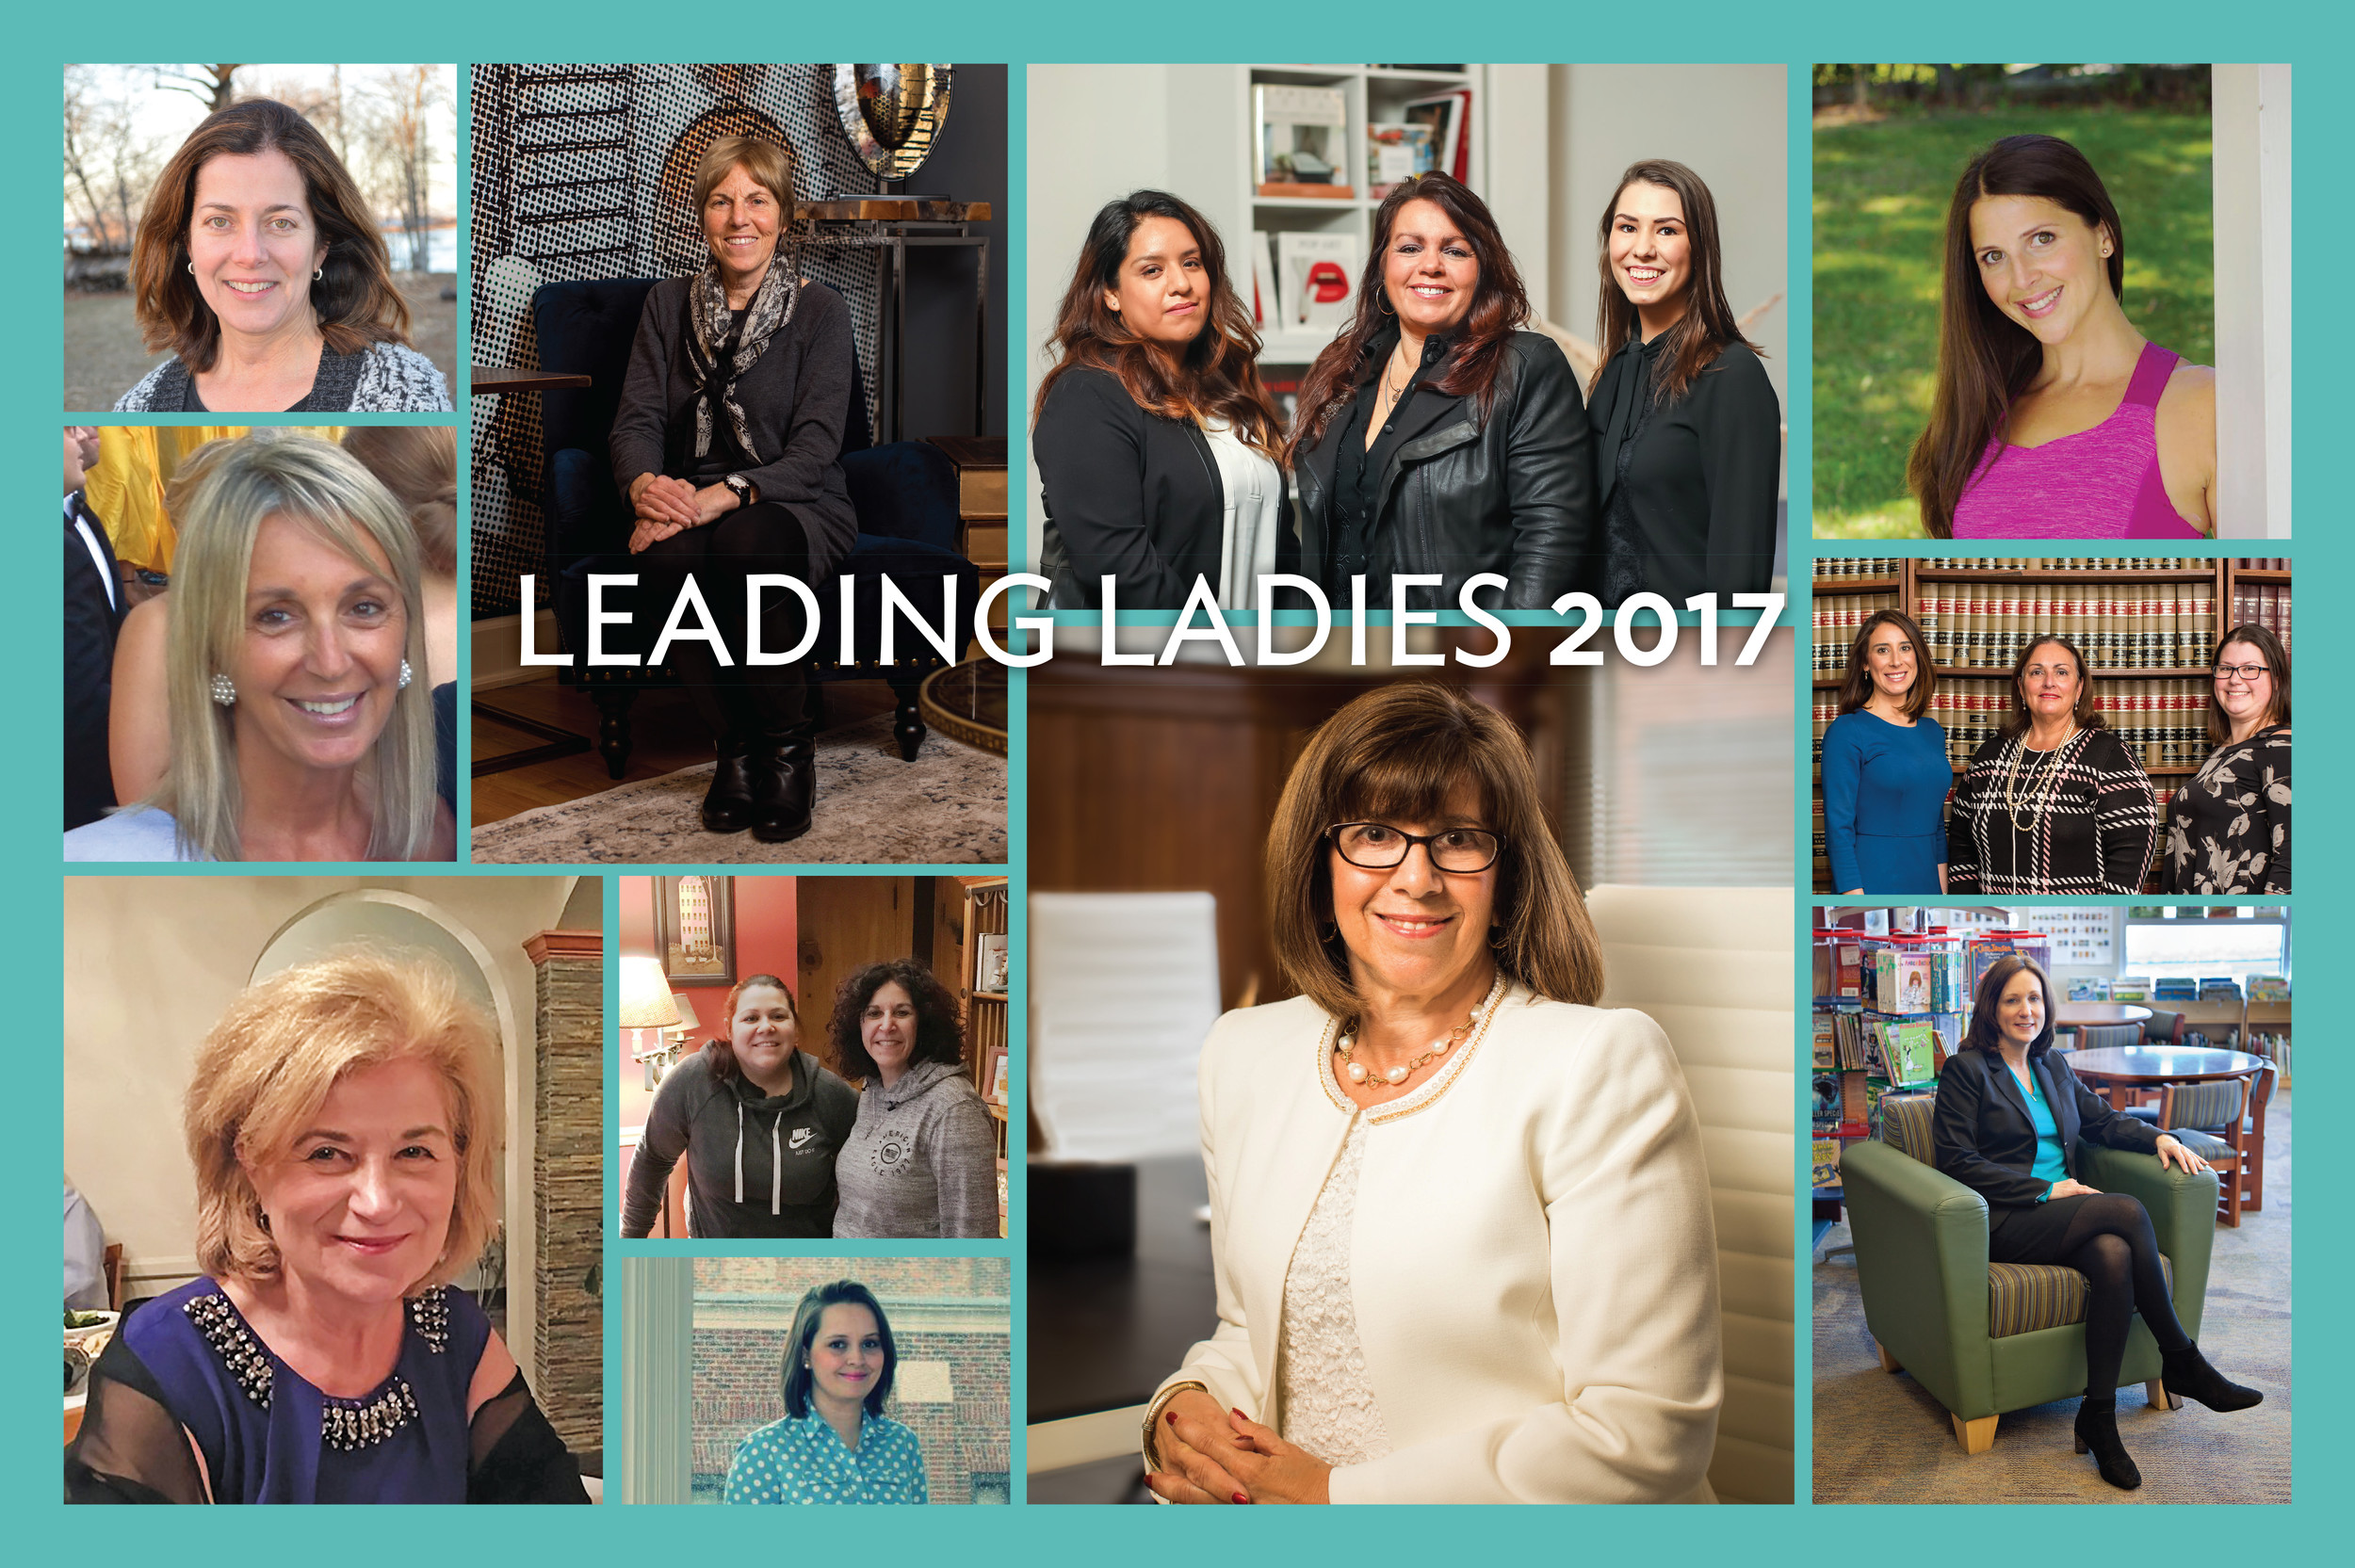 Over 100 Inspiring Stories Of Women Making A Difference In Rhode Island